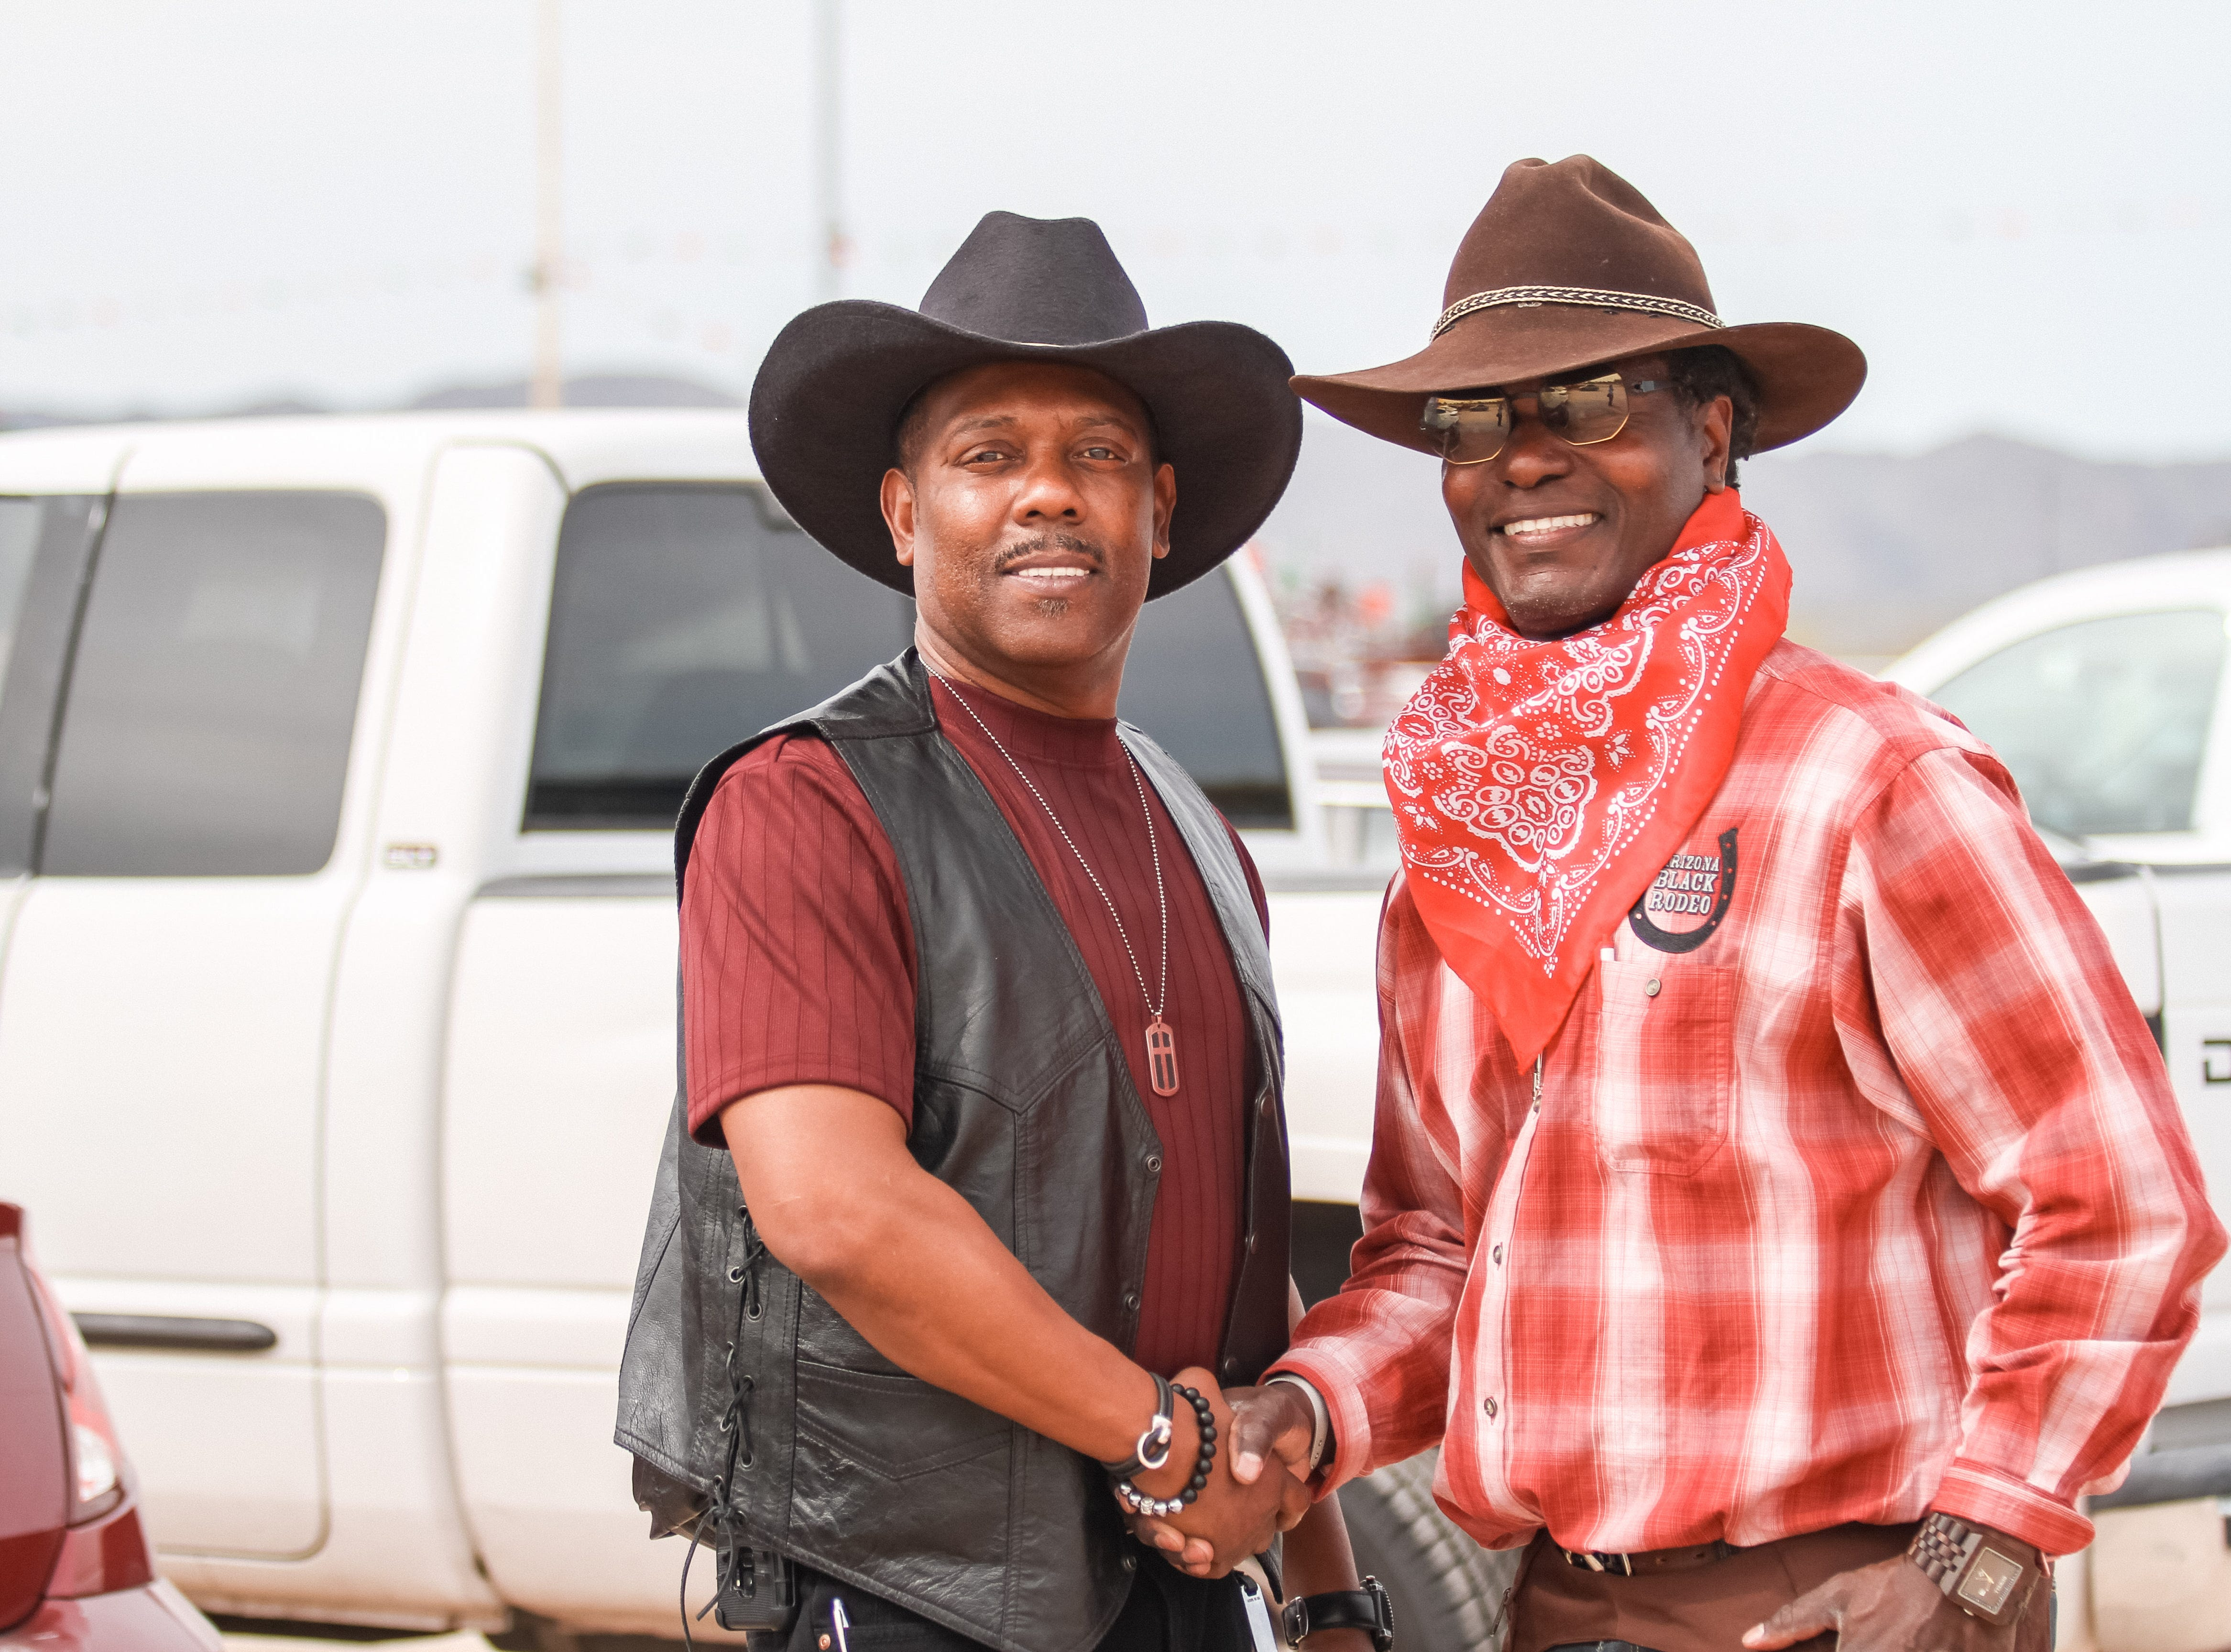 Dominic Booker and Mel Stevenson are pictured at the Arizona Black Rodeo in Chandler, Arizona on Saturday, March 9, 2019.